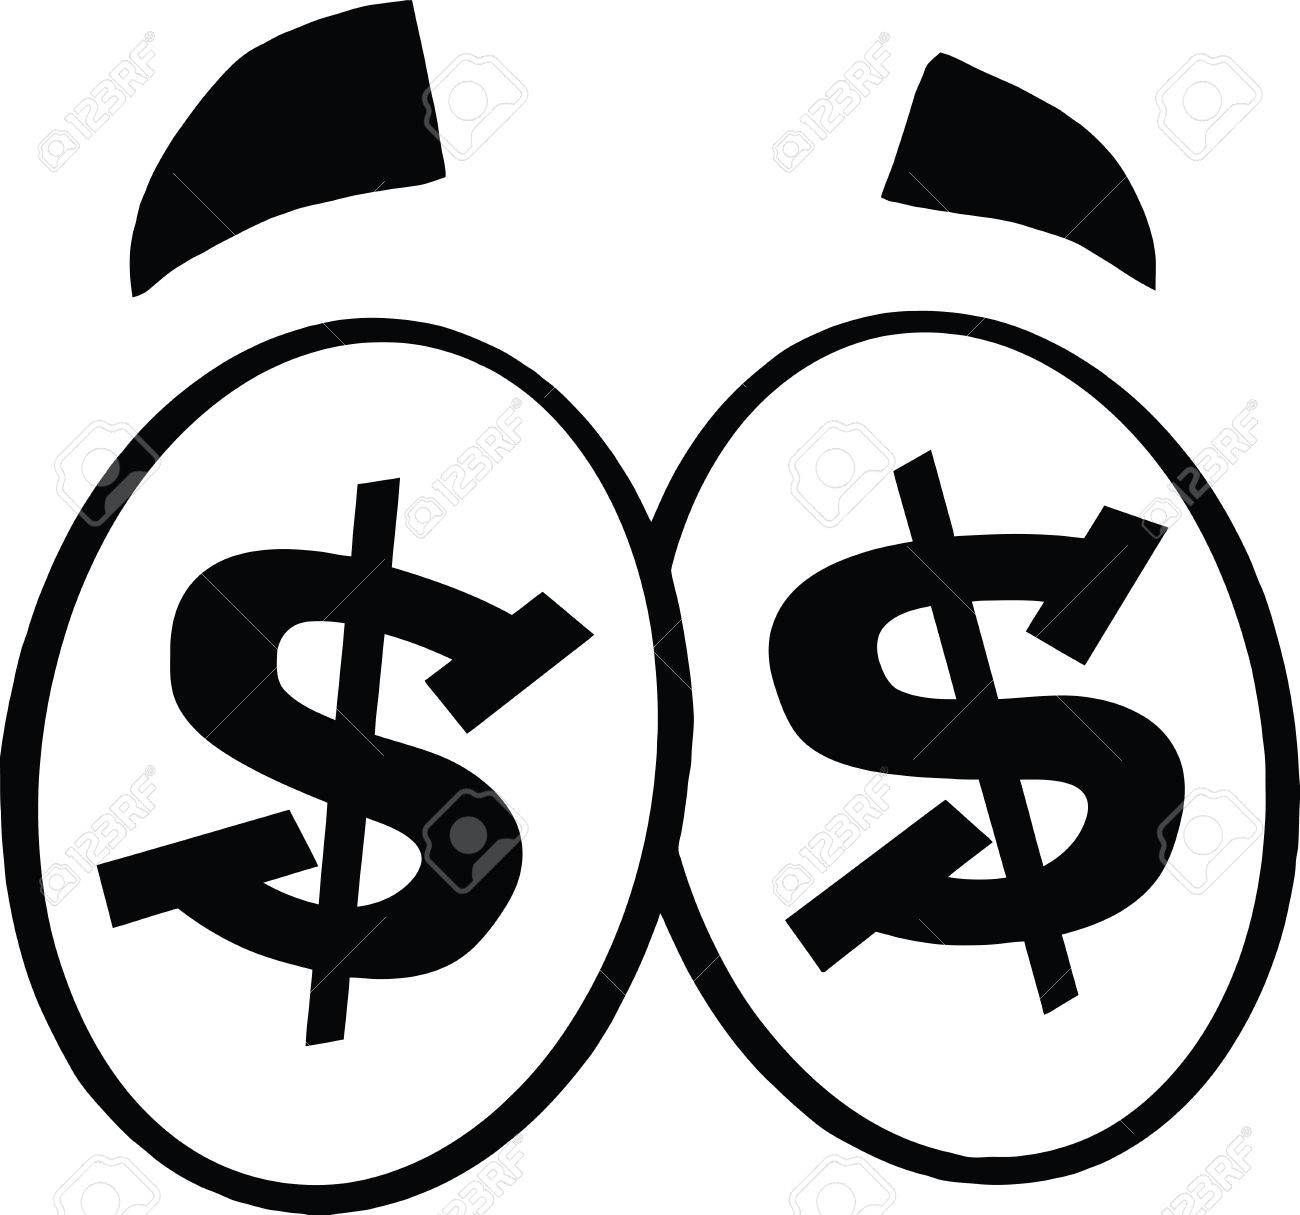 Black And White Dollar Sign